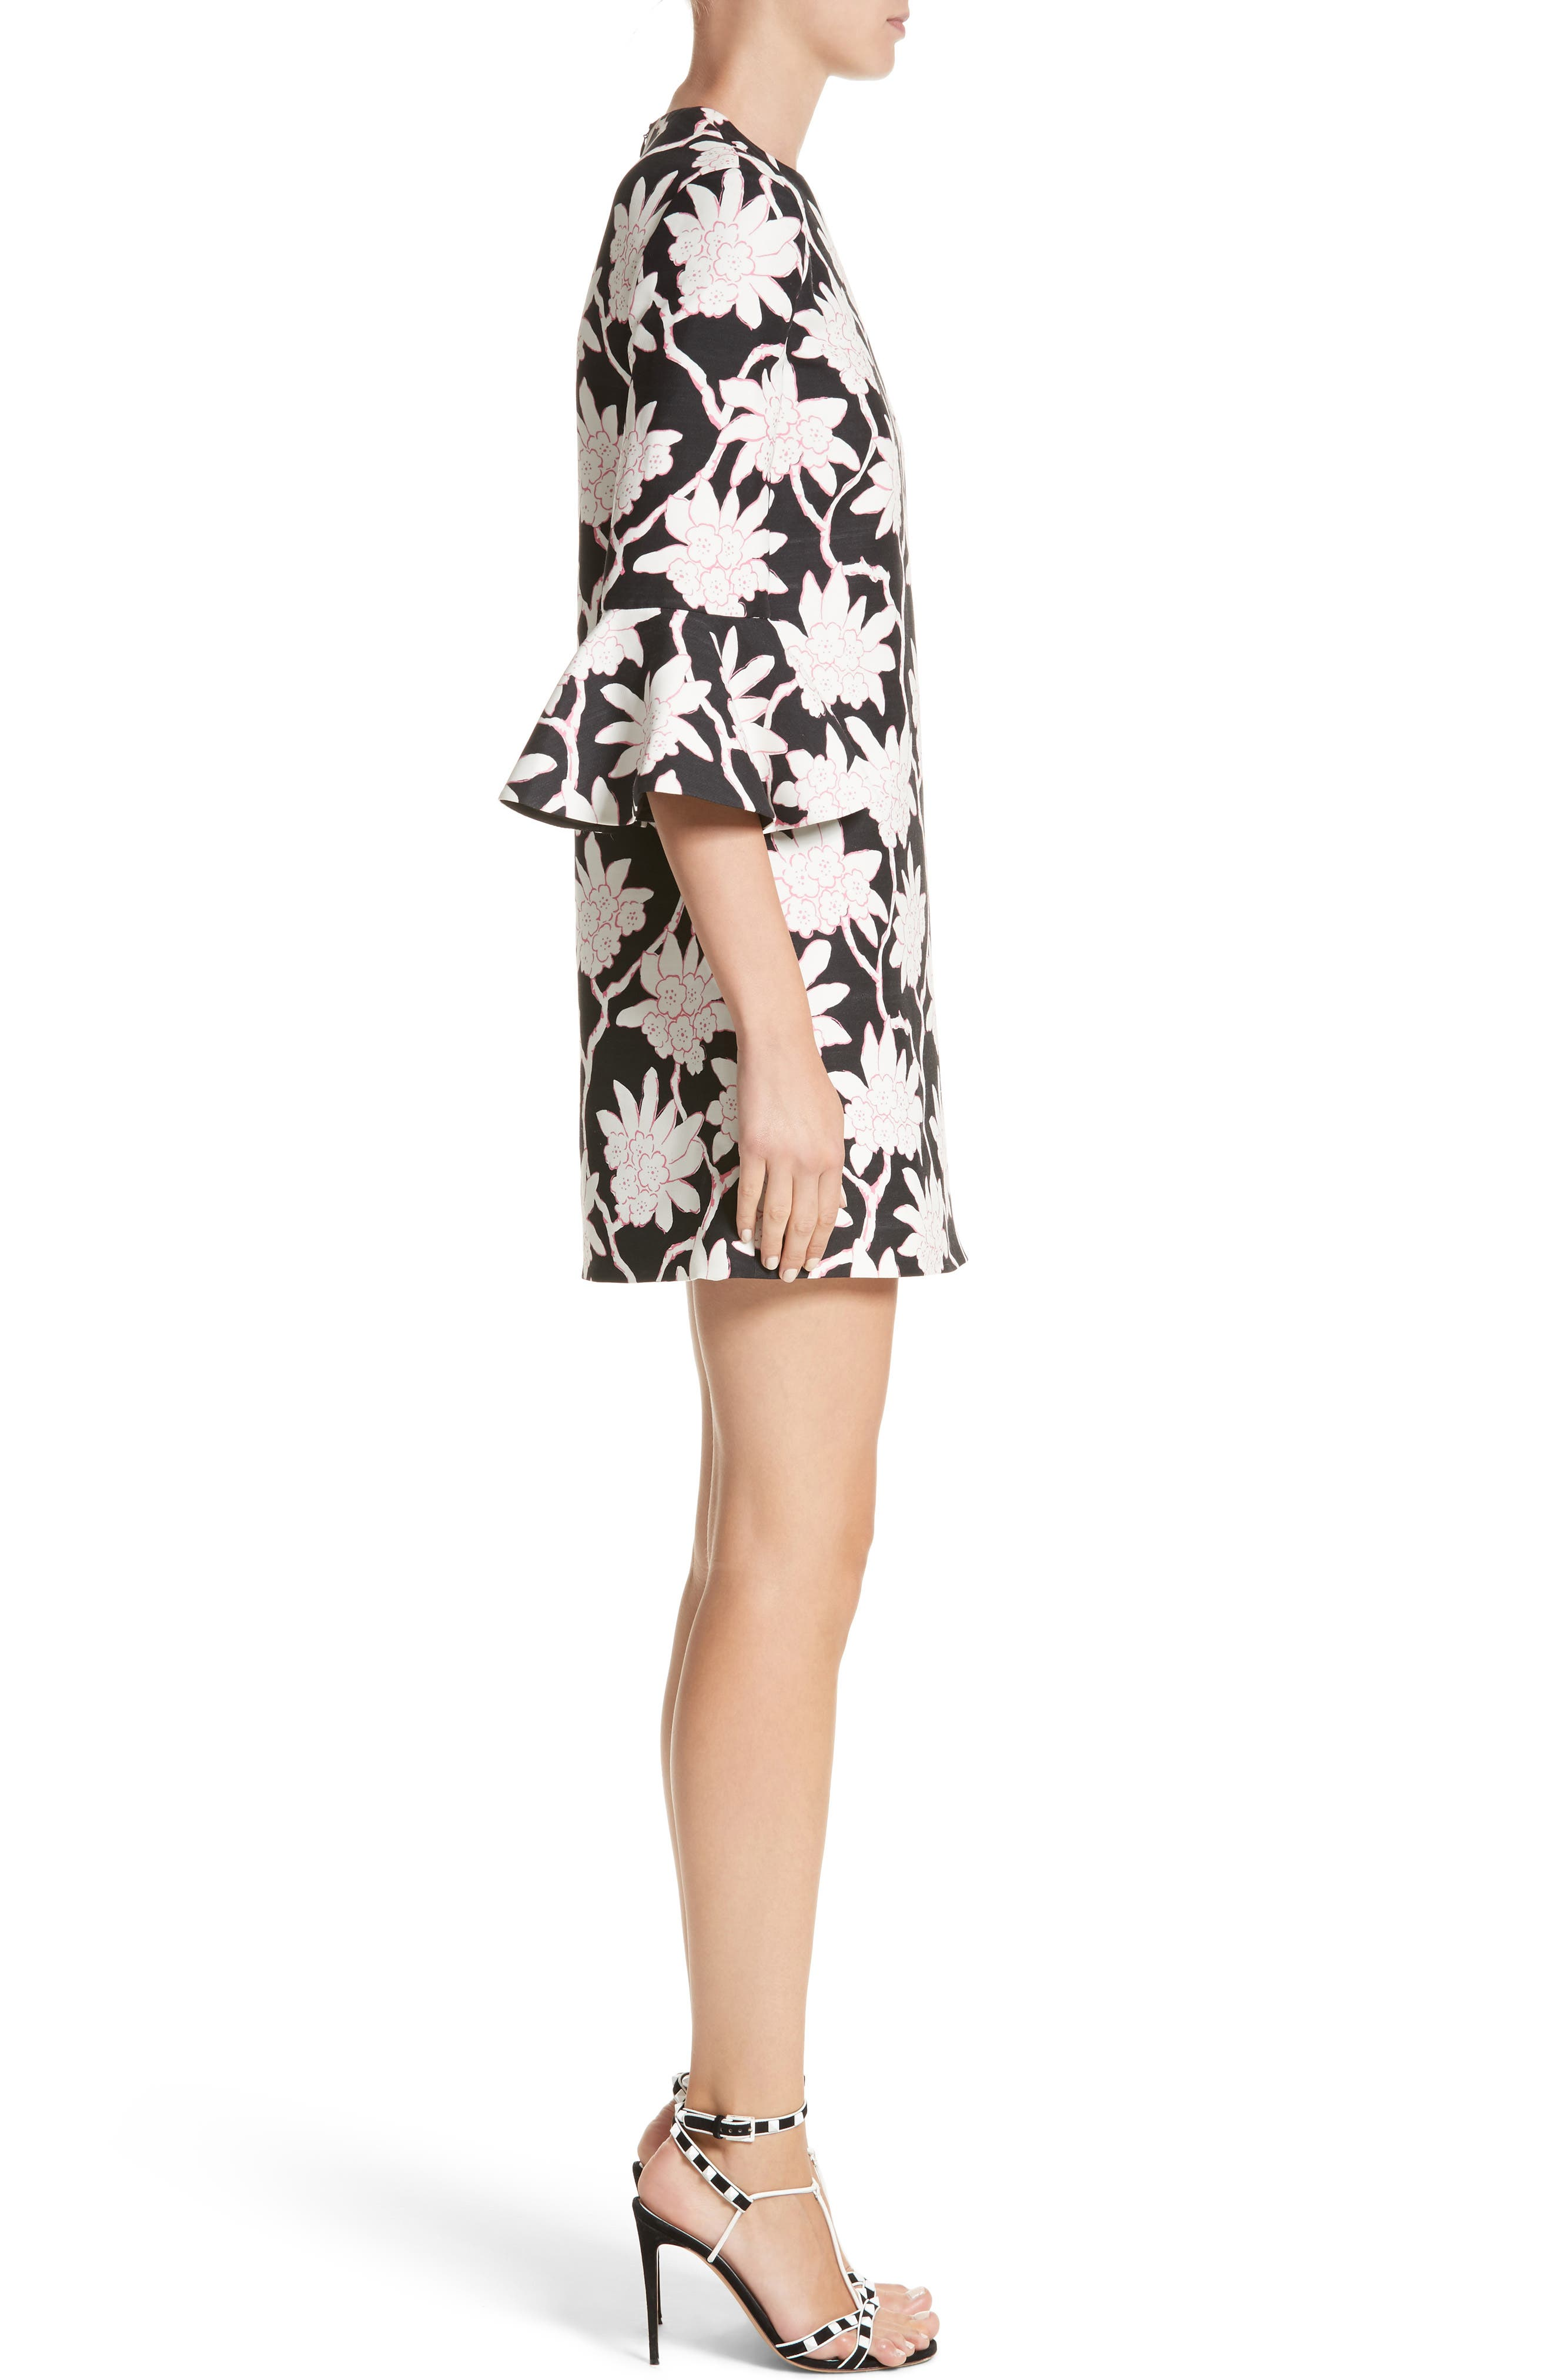 Rhododendron Print Wool & Silk Dress,                             Alternate thumbnail 3, color,                             001